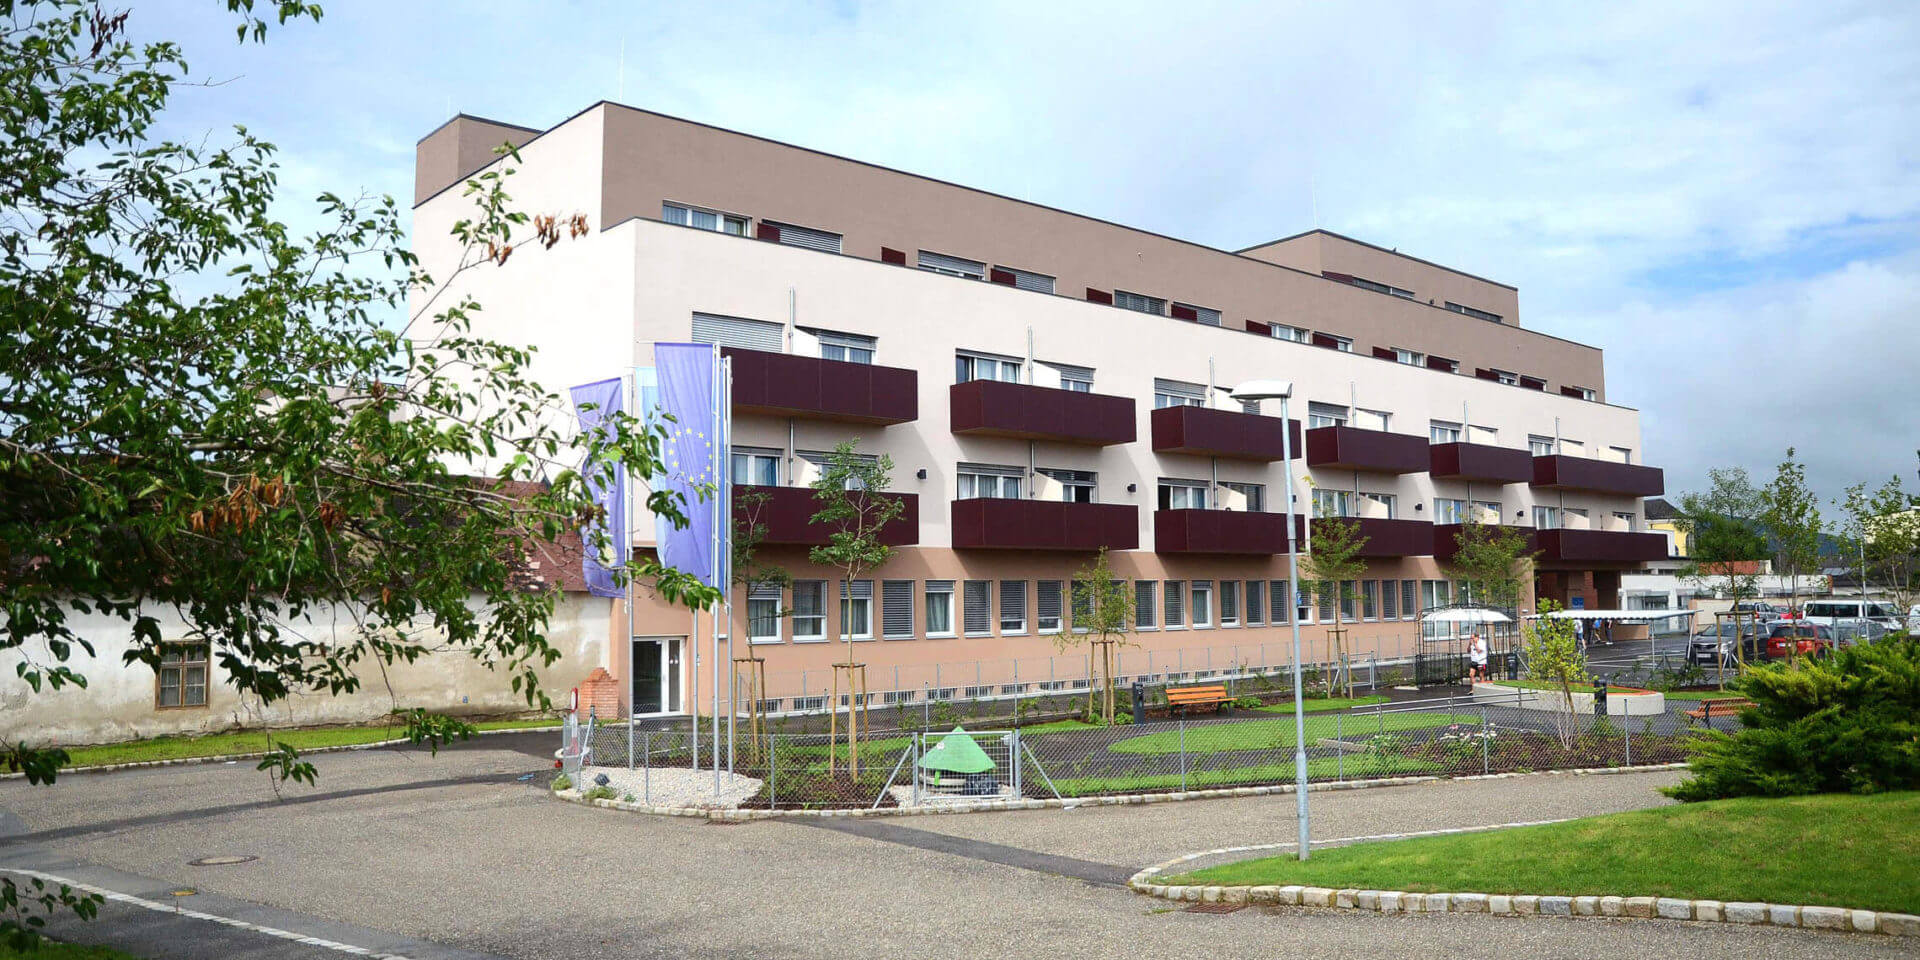 OptimaMed Neurologisches Rehabilitationszentrum Kittsee